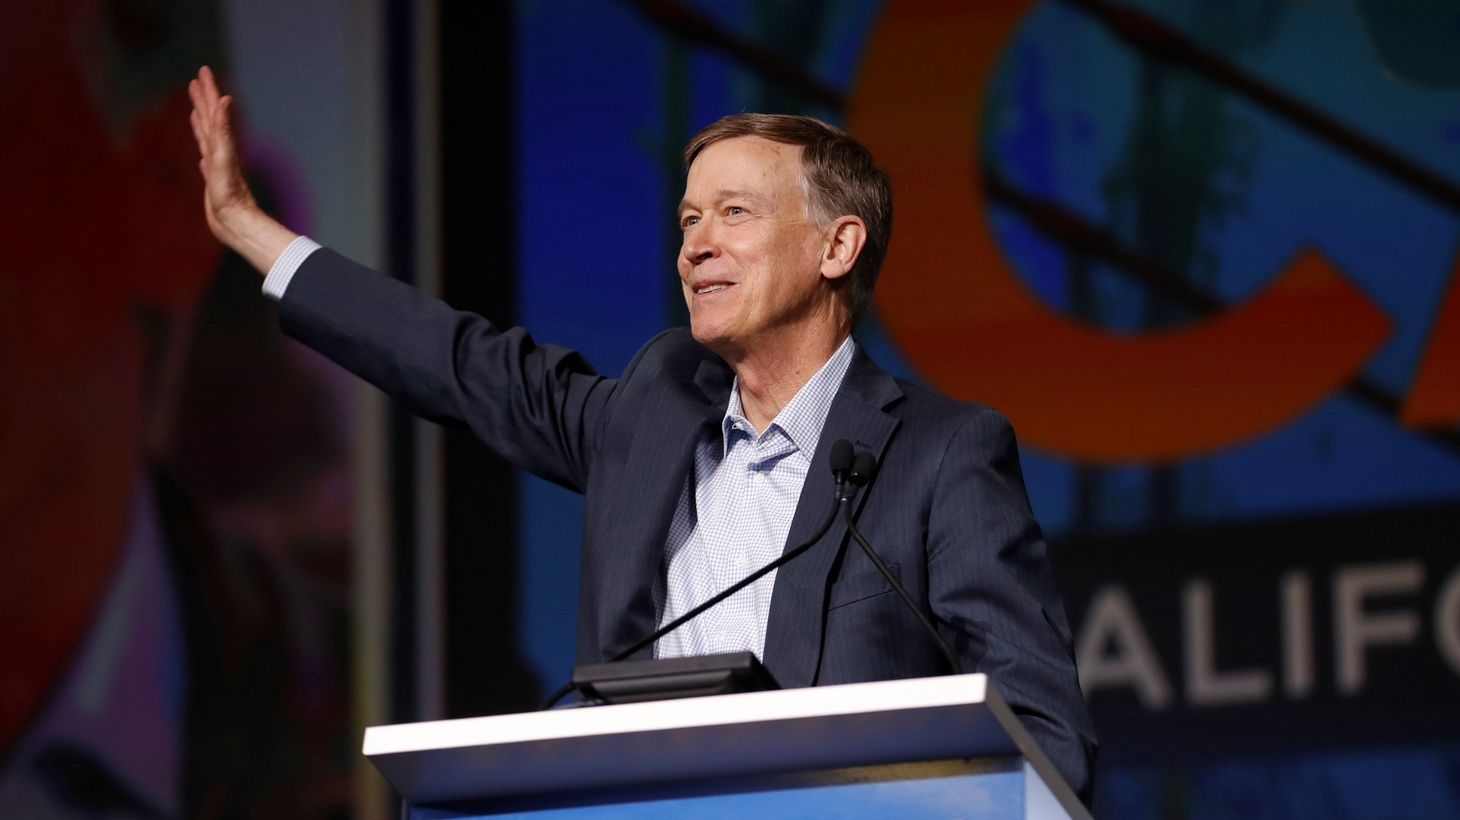 Democratic presidential candidate and former Colorado governor John Hickenlooper speaks during the California Democratic Convention in San Francisco, California, U.S. June 1, 2019.